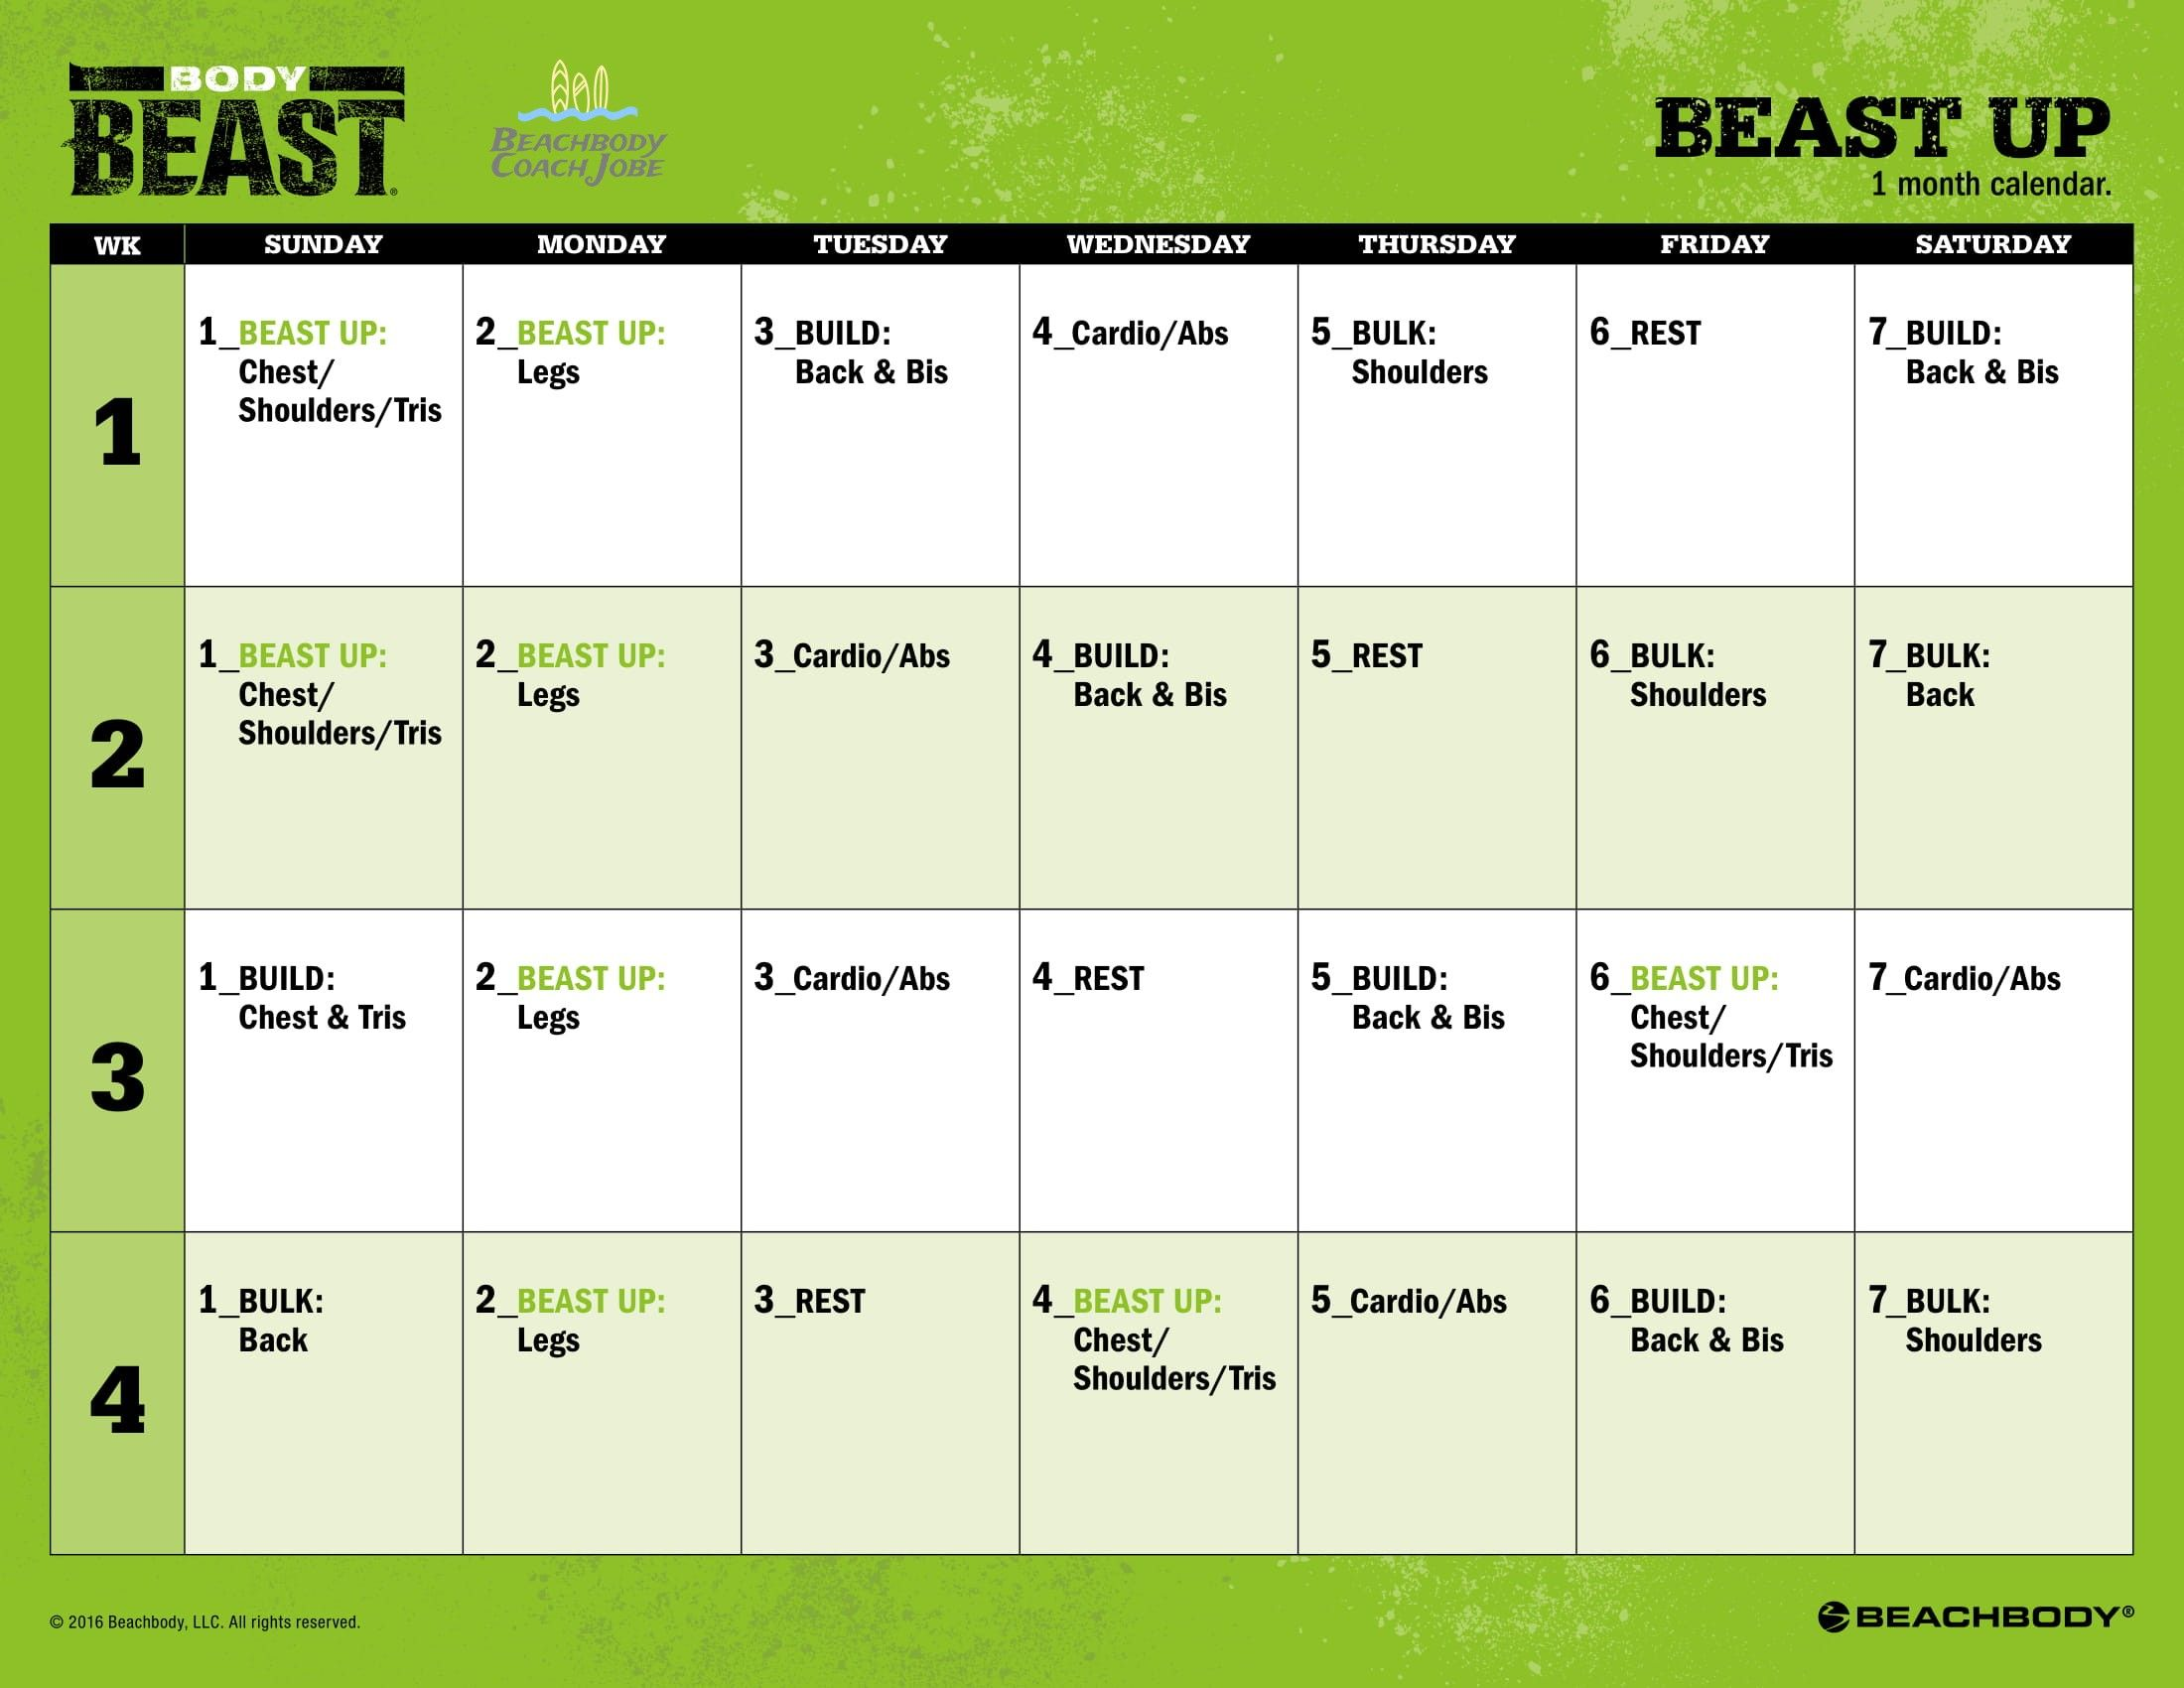 Body Beast Beast Up Calendar By Beachbody The Creators Of